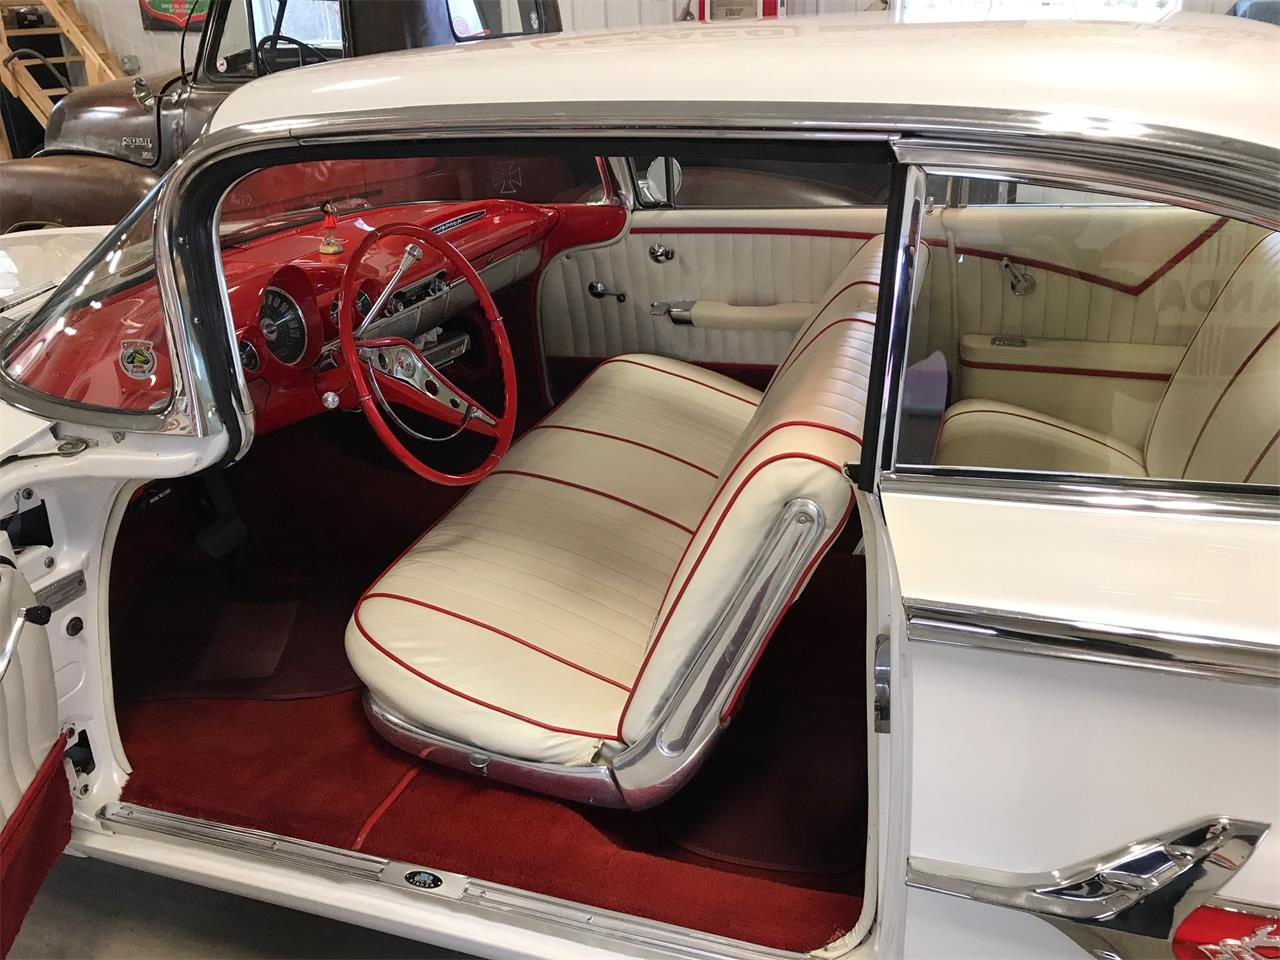 Large Picture of '60 Impala - $47,000.00 Offered by a Private Seller - QOLH